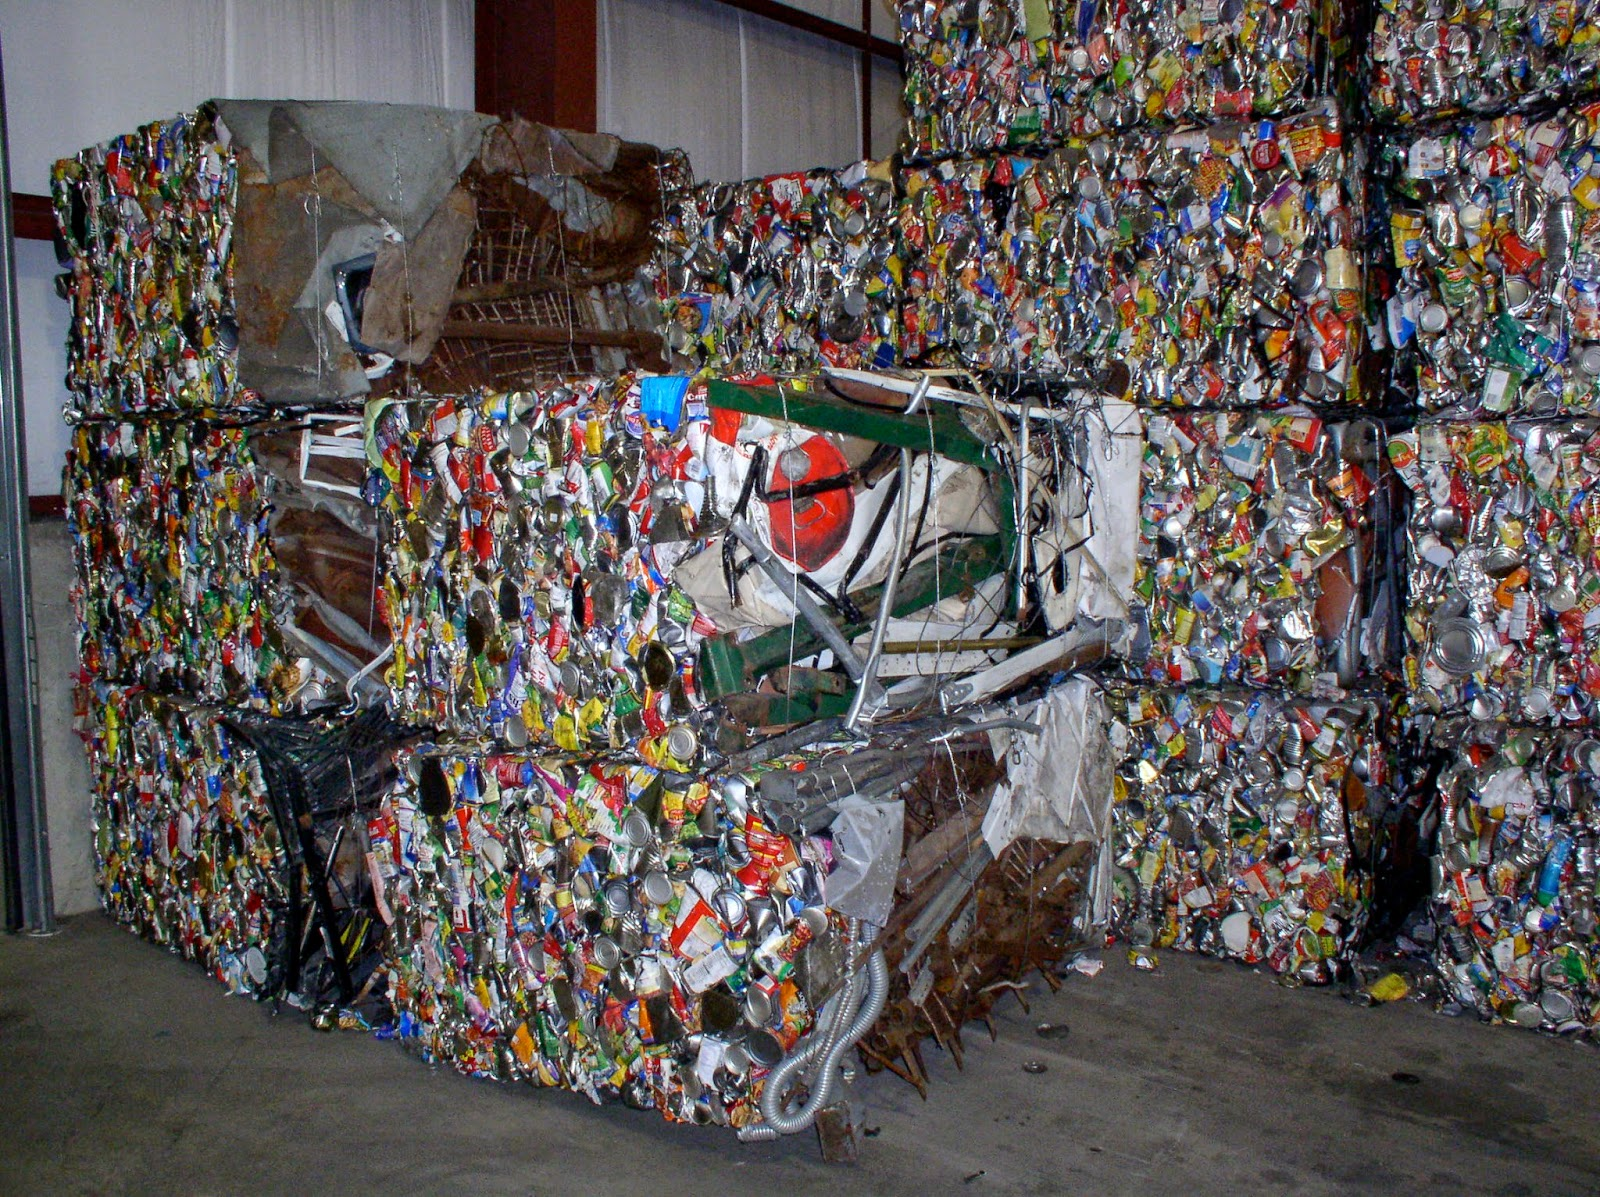 Emerging Trend - The Shift Toward Single-Stream Recycling